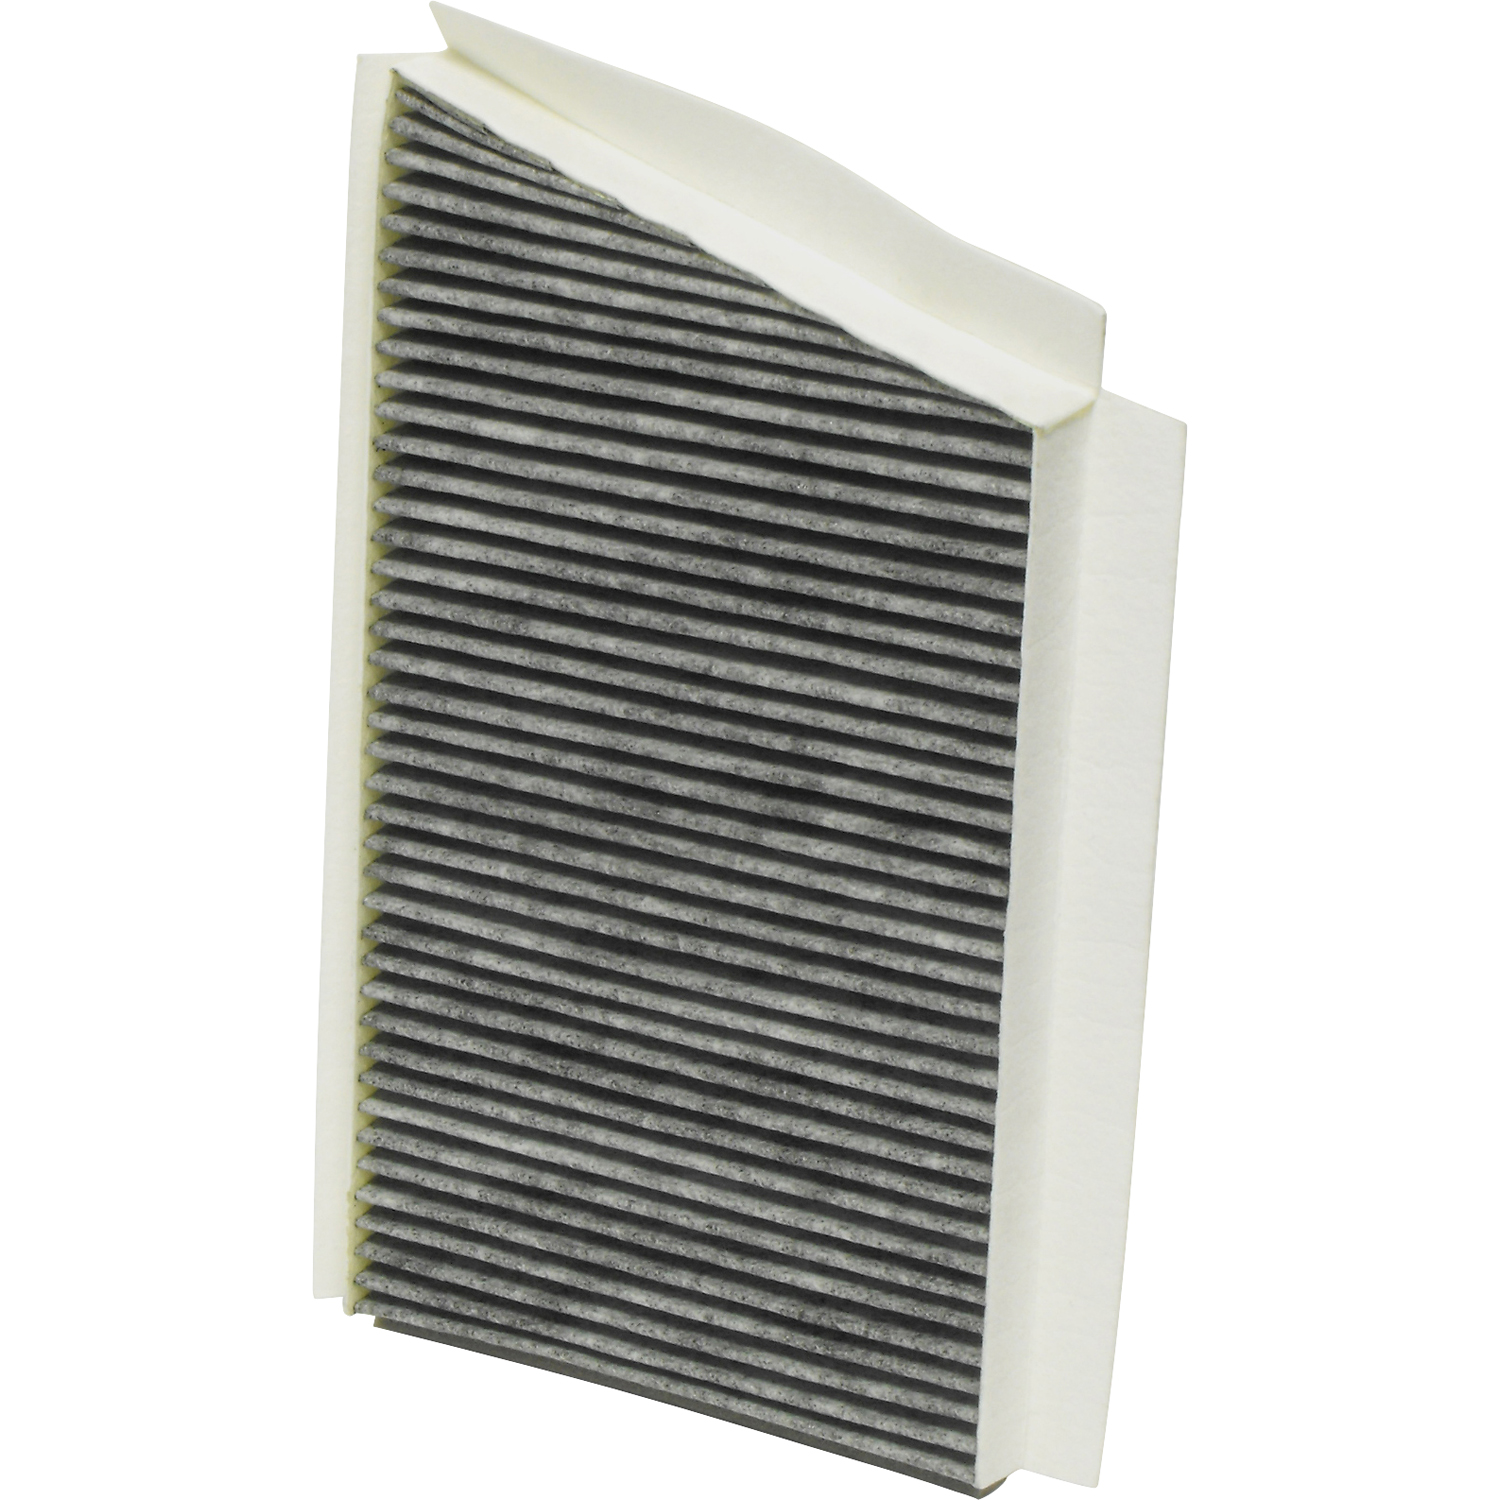 Charcoal Cabin Air Filter FI 1096C